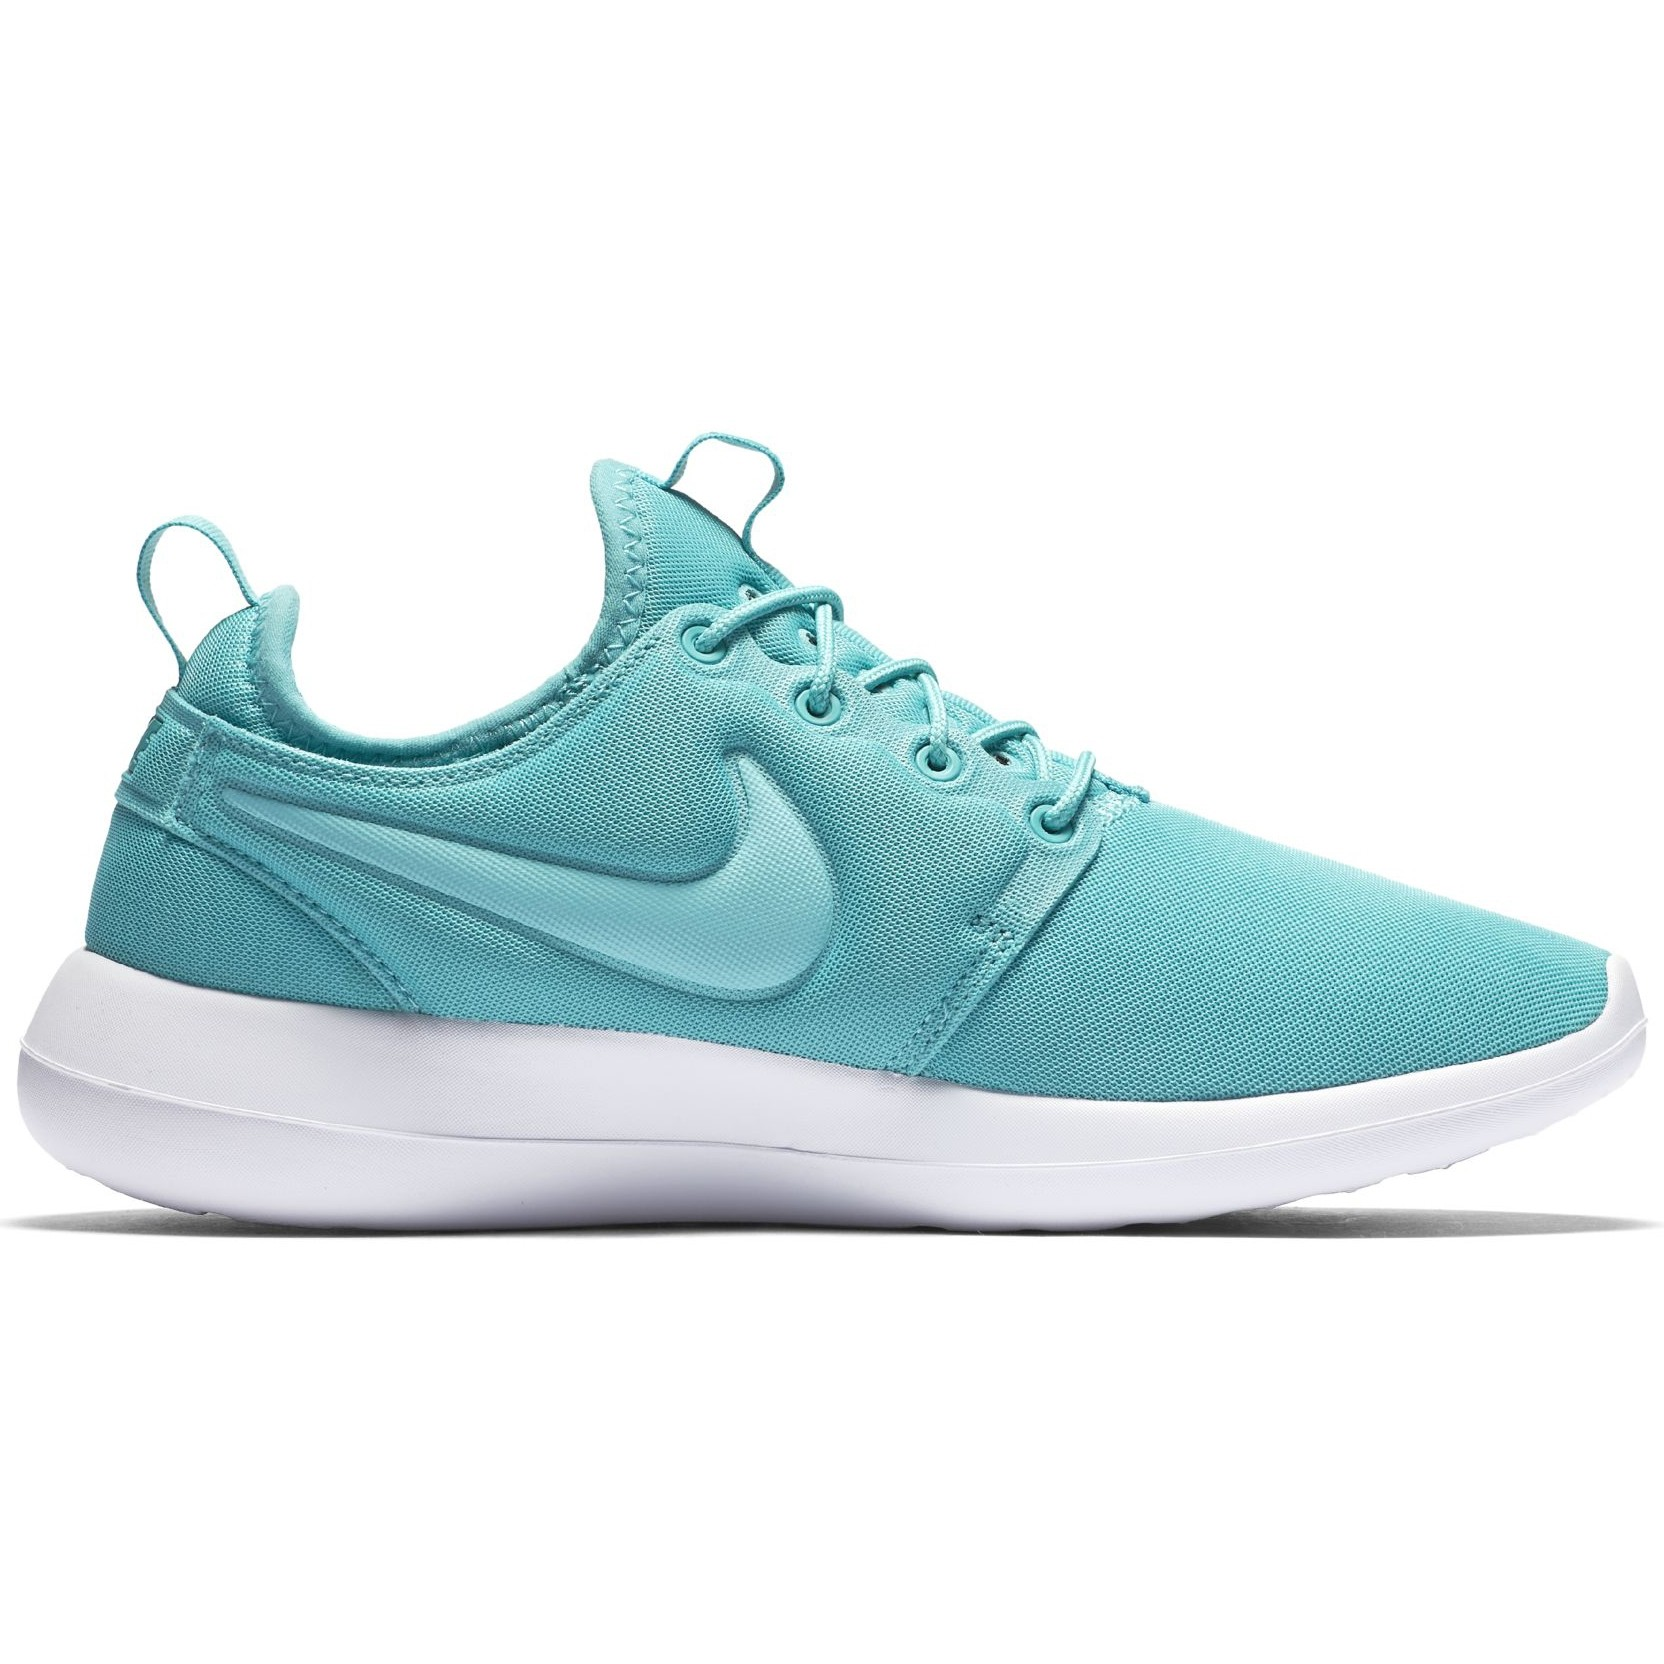 Nike Wmns Roshe Two Washed Teal - Nike Roshe shoes